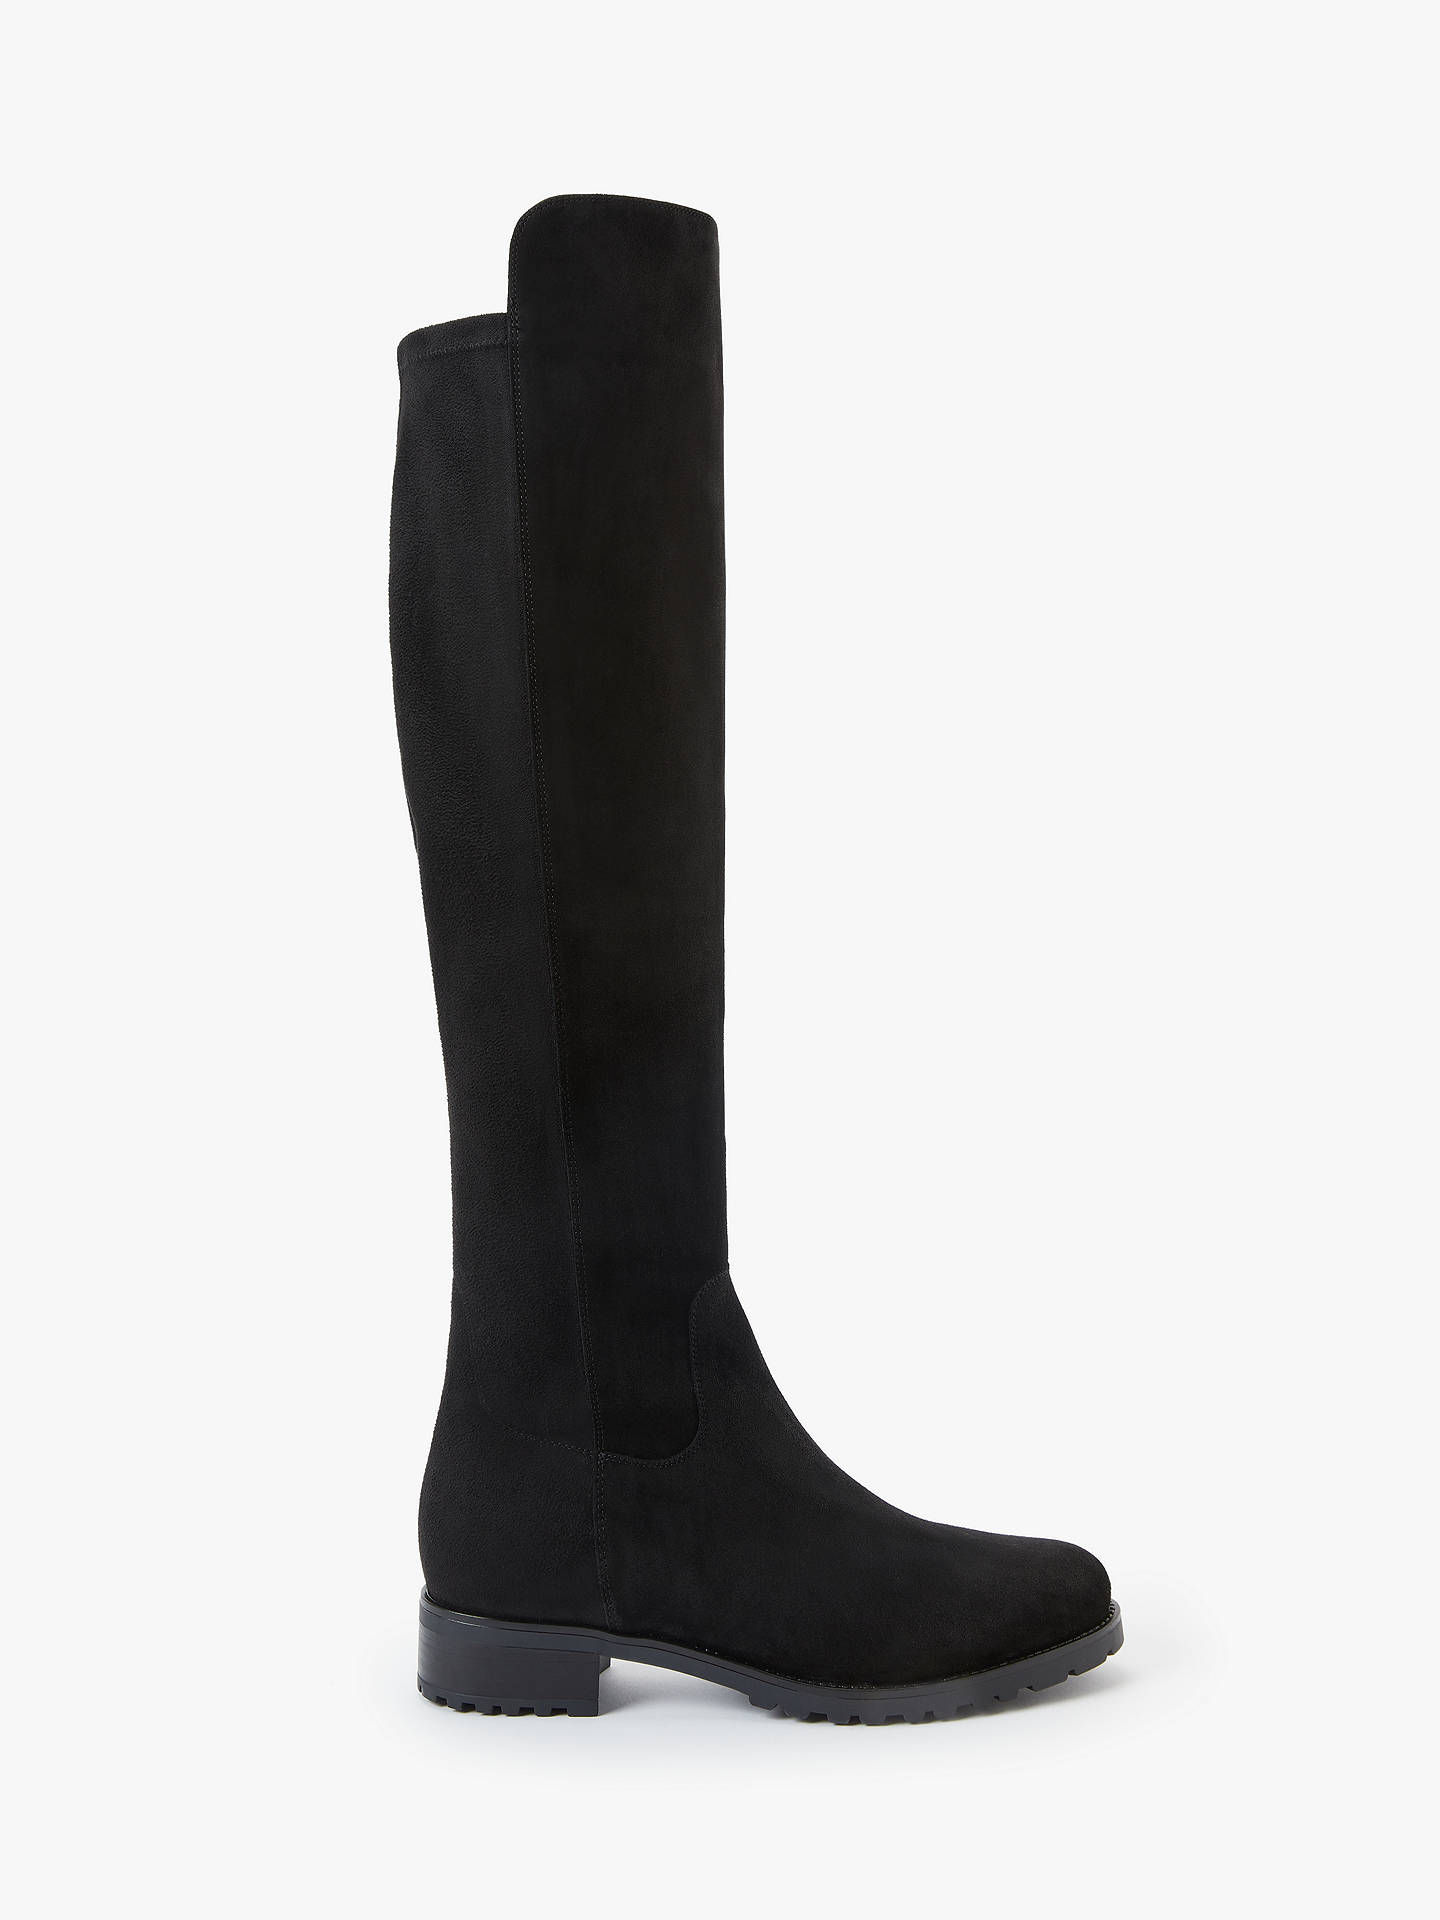 John Lewis & Partners Tilda Suede Over The Knee Boots, Black by John Lewis & Partners